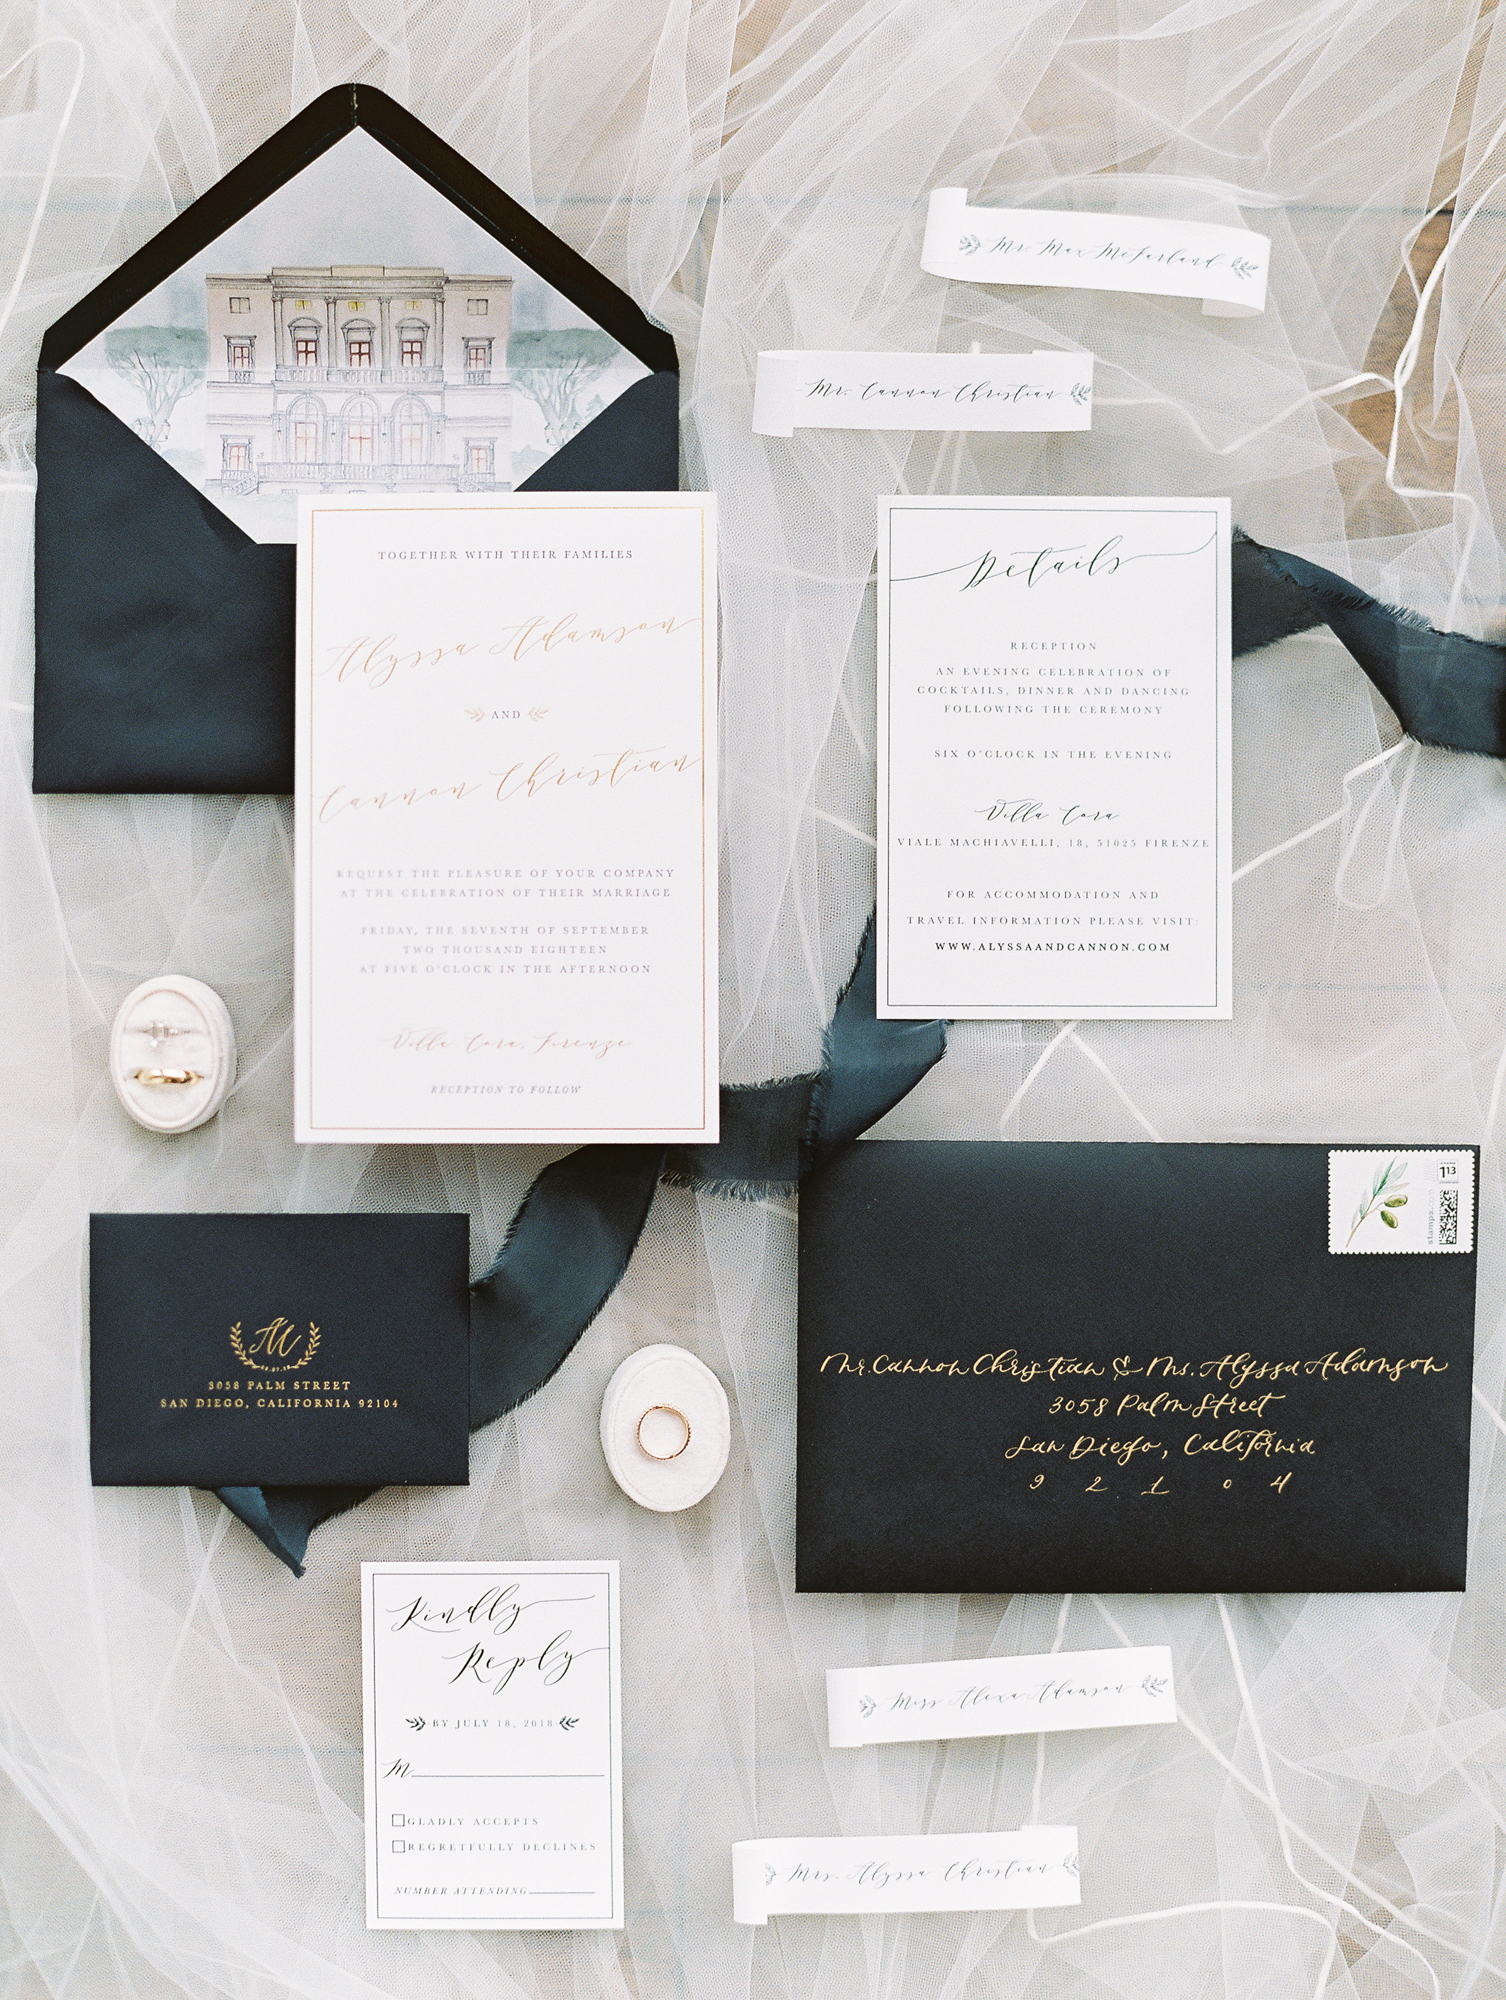 Michelle Garibay Events | Cavin Elizabeth Photography | Elegant Black, White and Gold Wedding | Custom Illustrated Envelope Liner